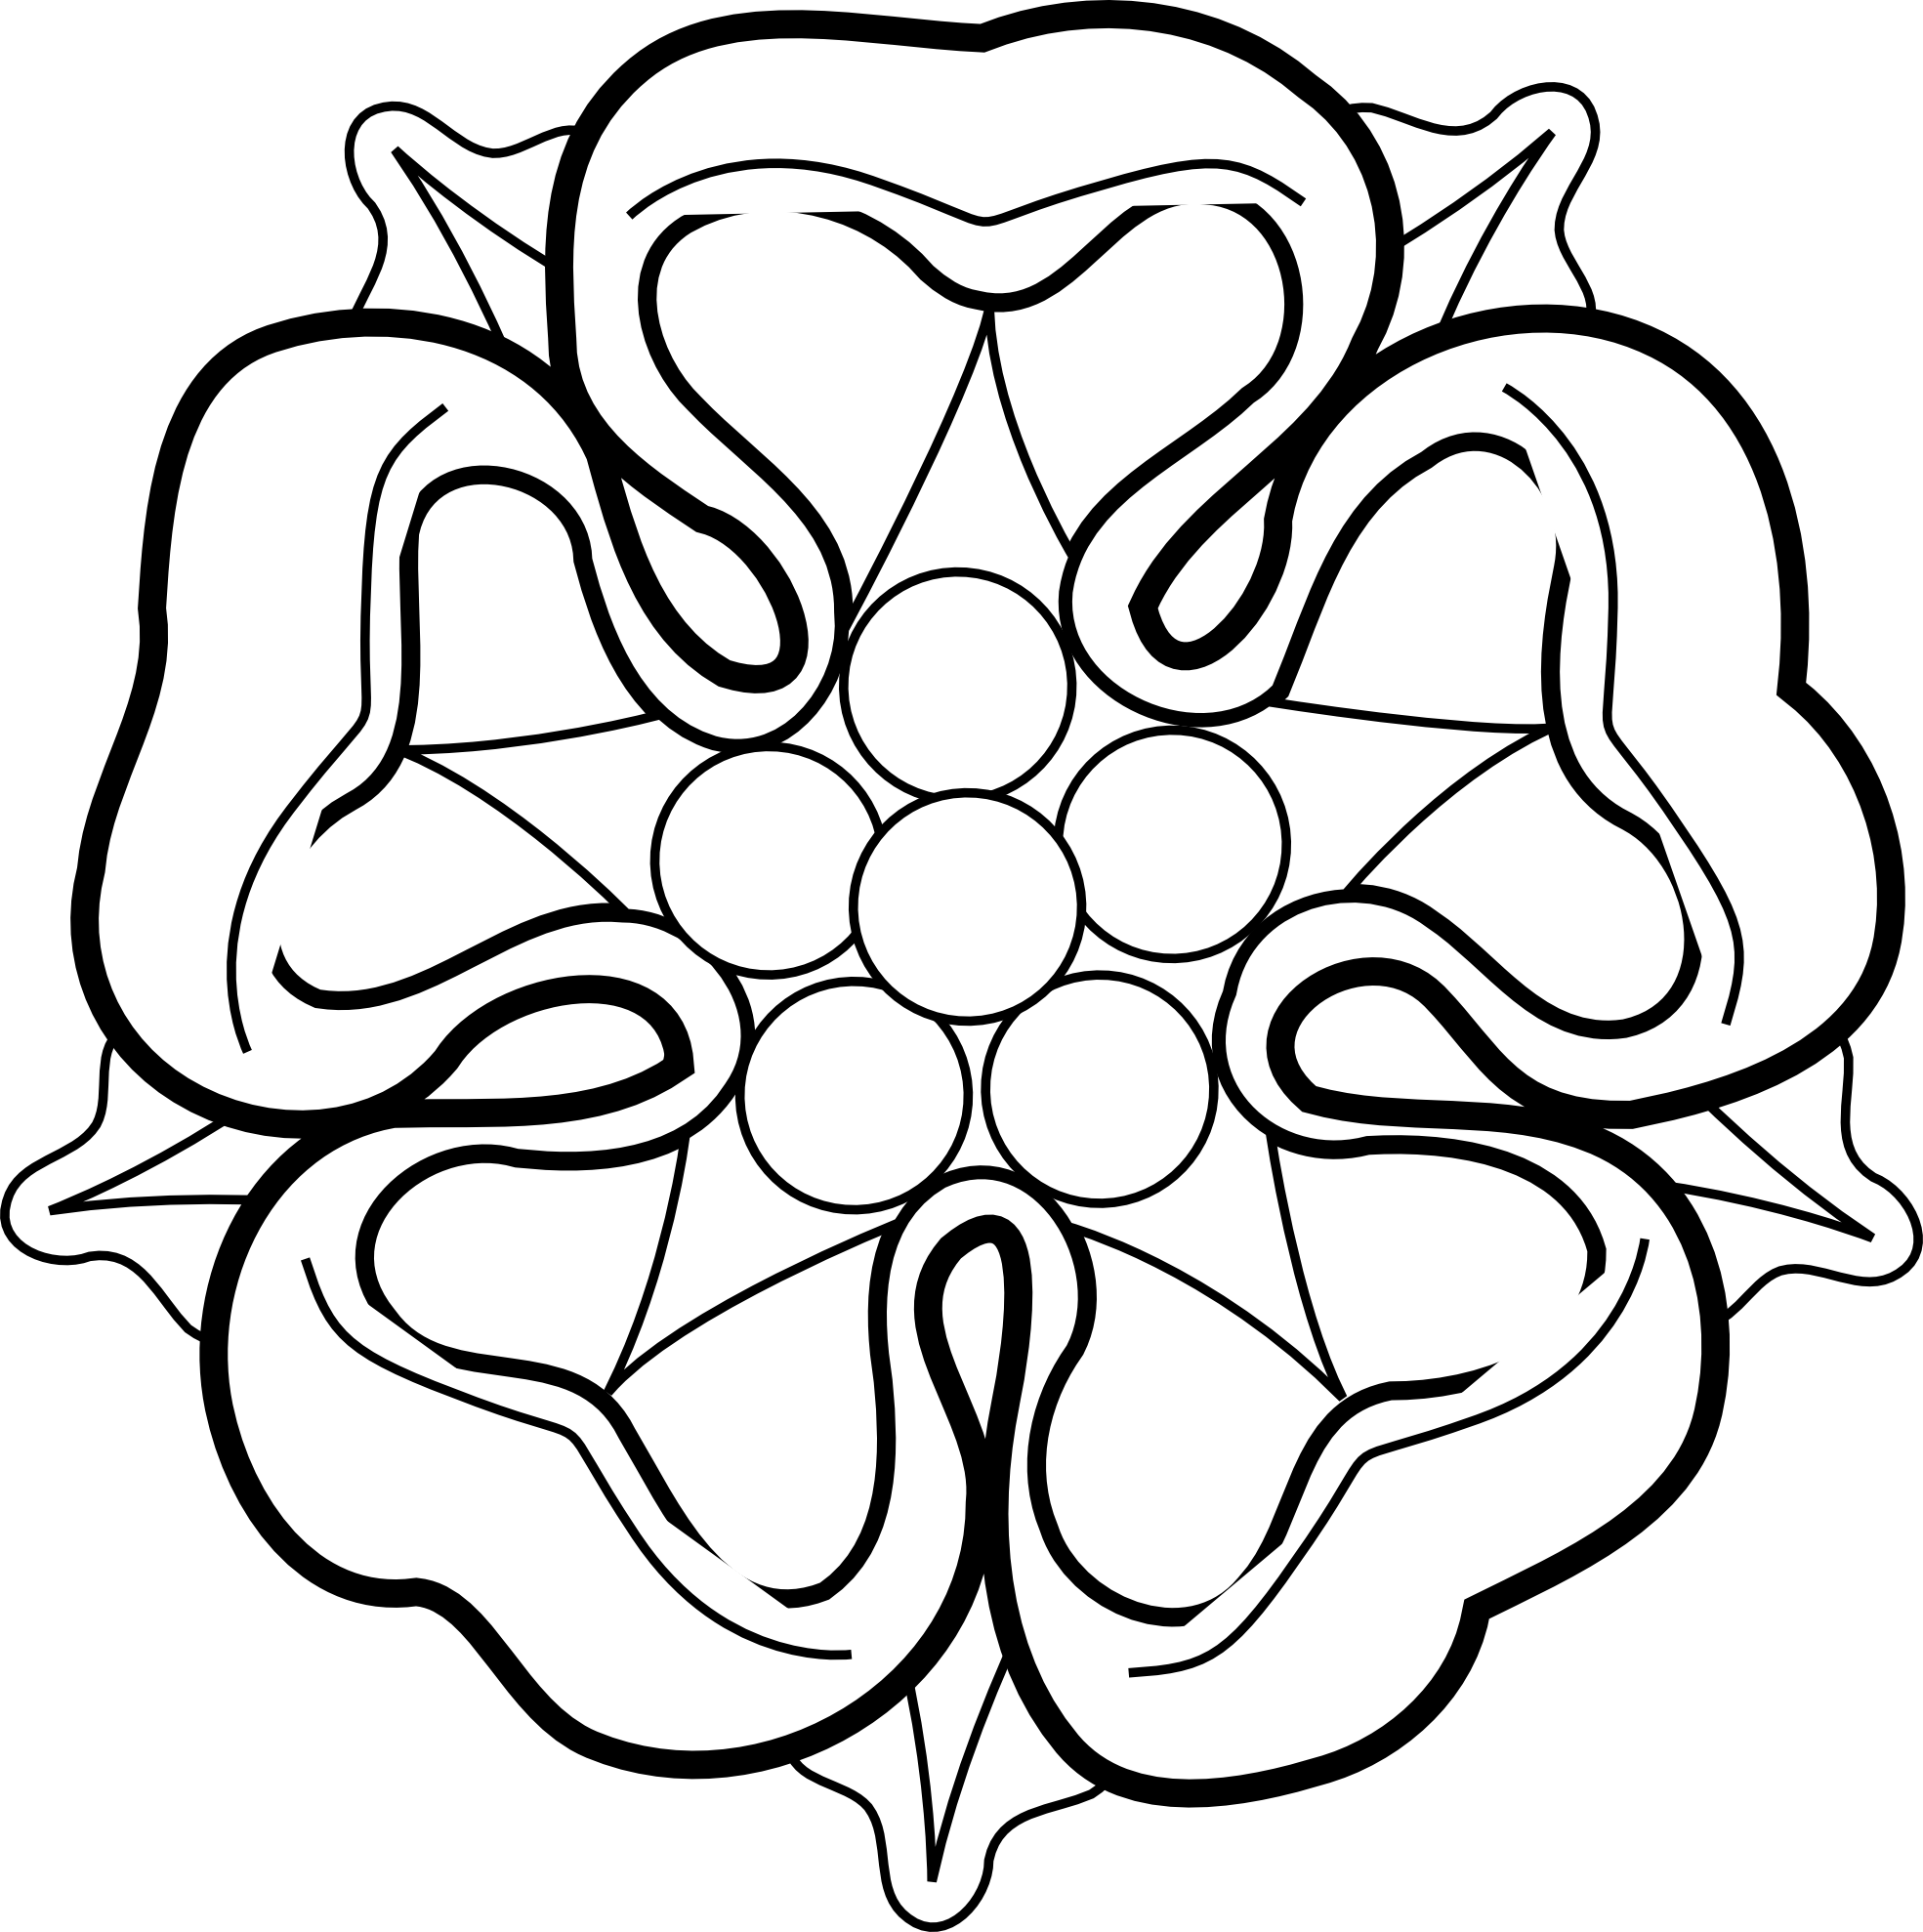 White Rose coloring #1, Download drawings